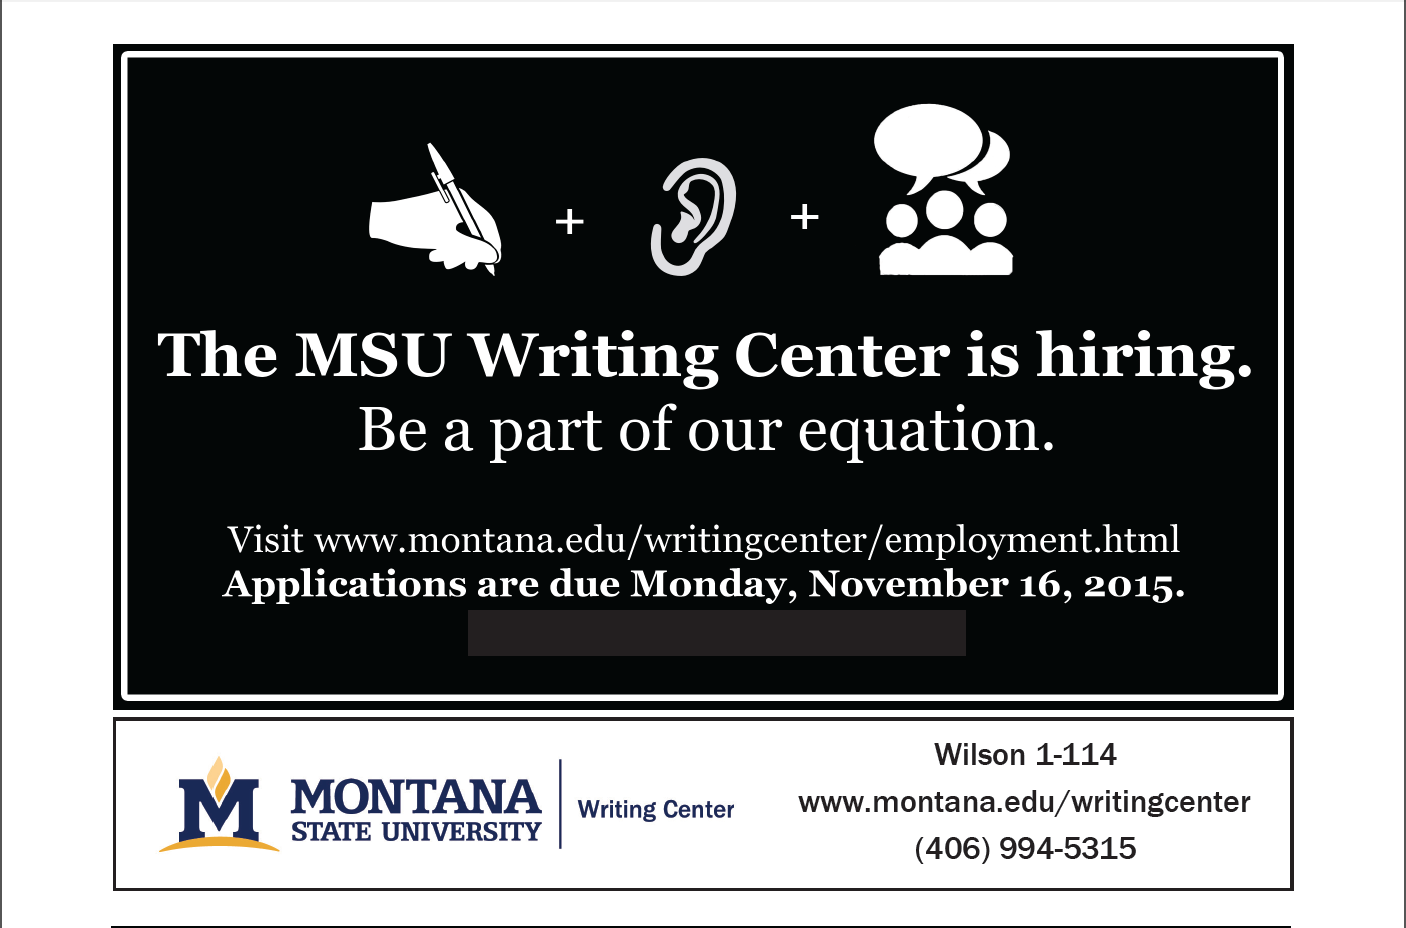 writing center msu Msu writing center, east lansing, mi 1,128 likes 1 talking about this 178 were here we are here to serve msu and the surrounding community with.